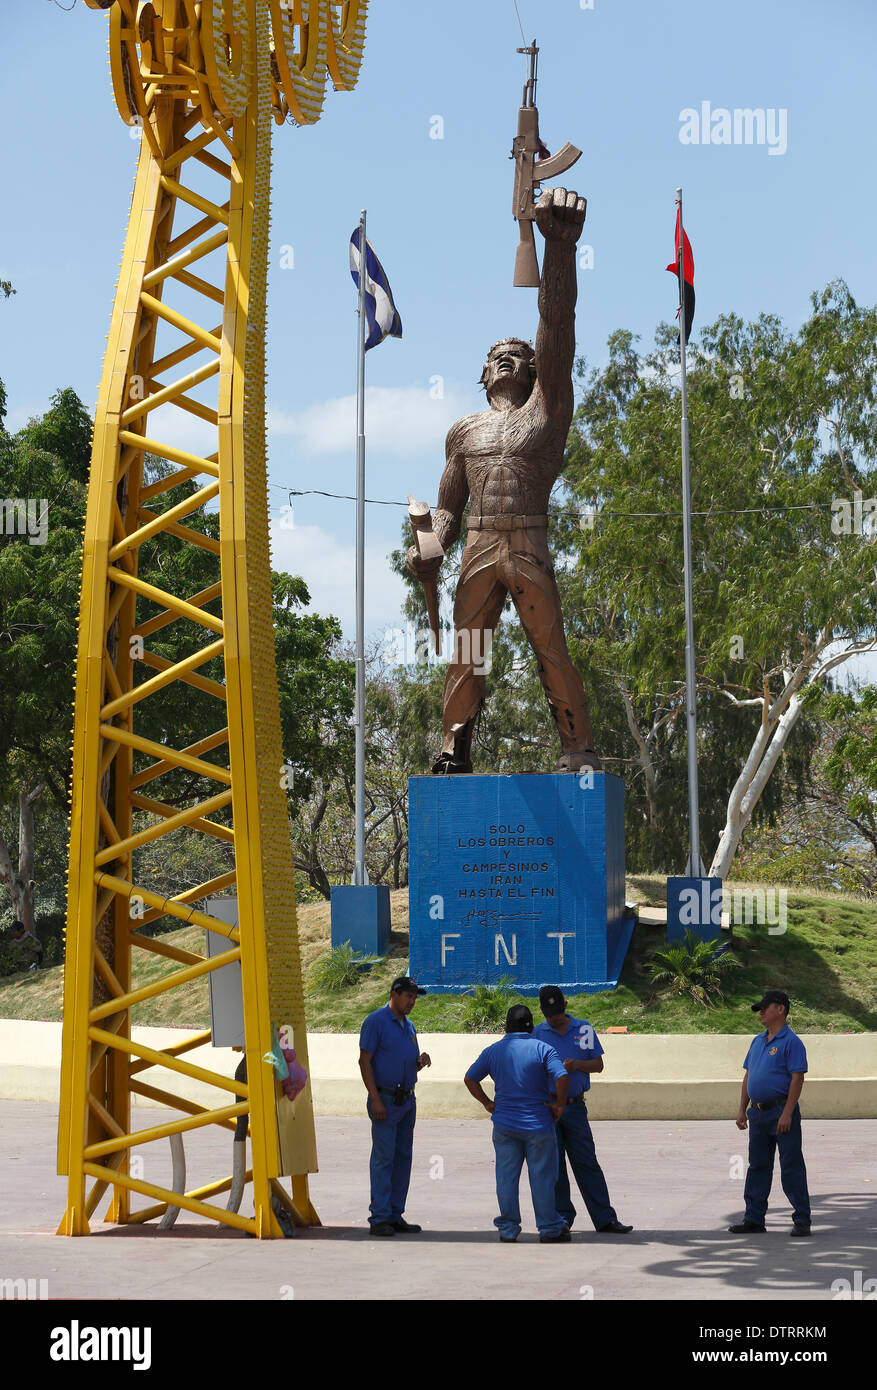 Revolutionary statue and men from the ruling FSLN party, Managua Nicaragua - Stock Image